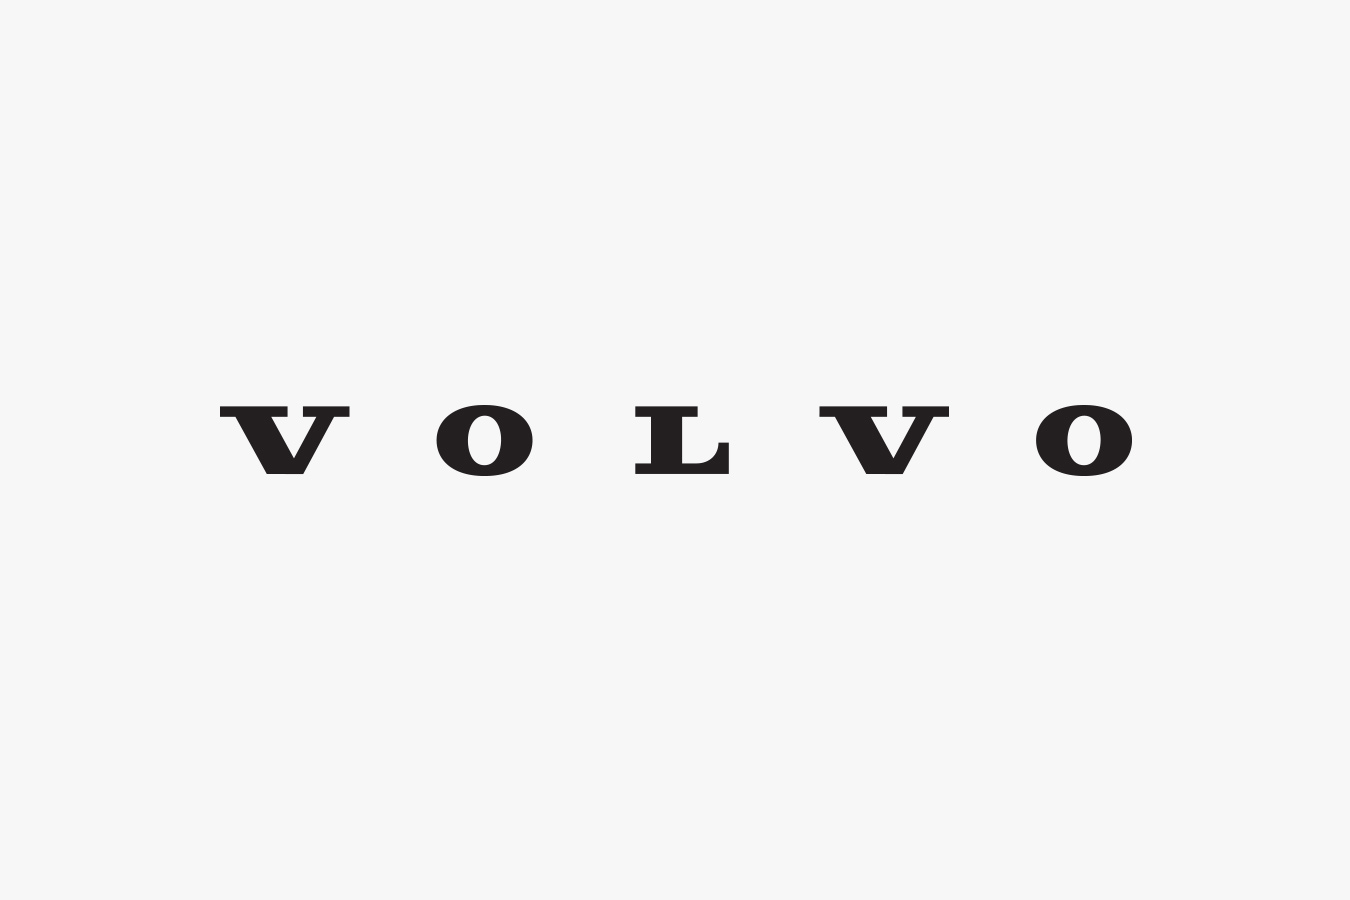 Volvo Logos - Iron Mark Line Art 2014